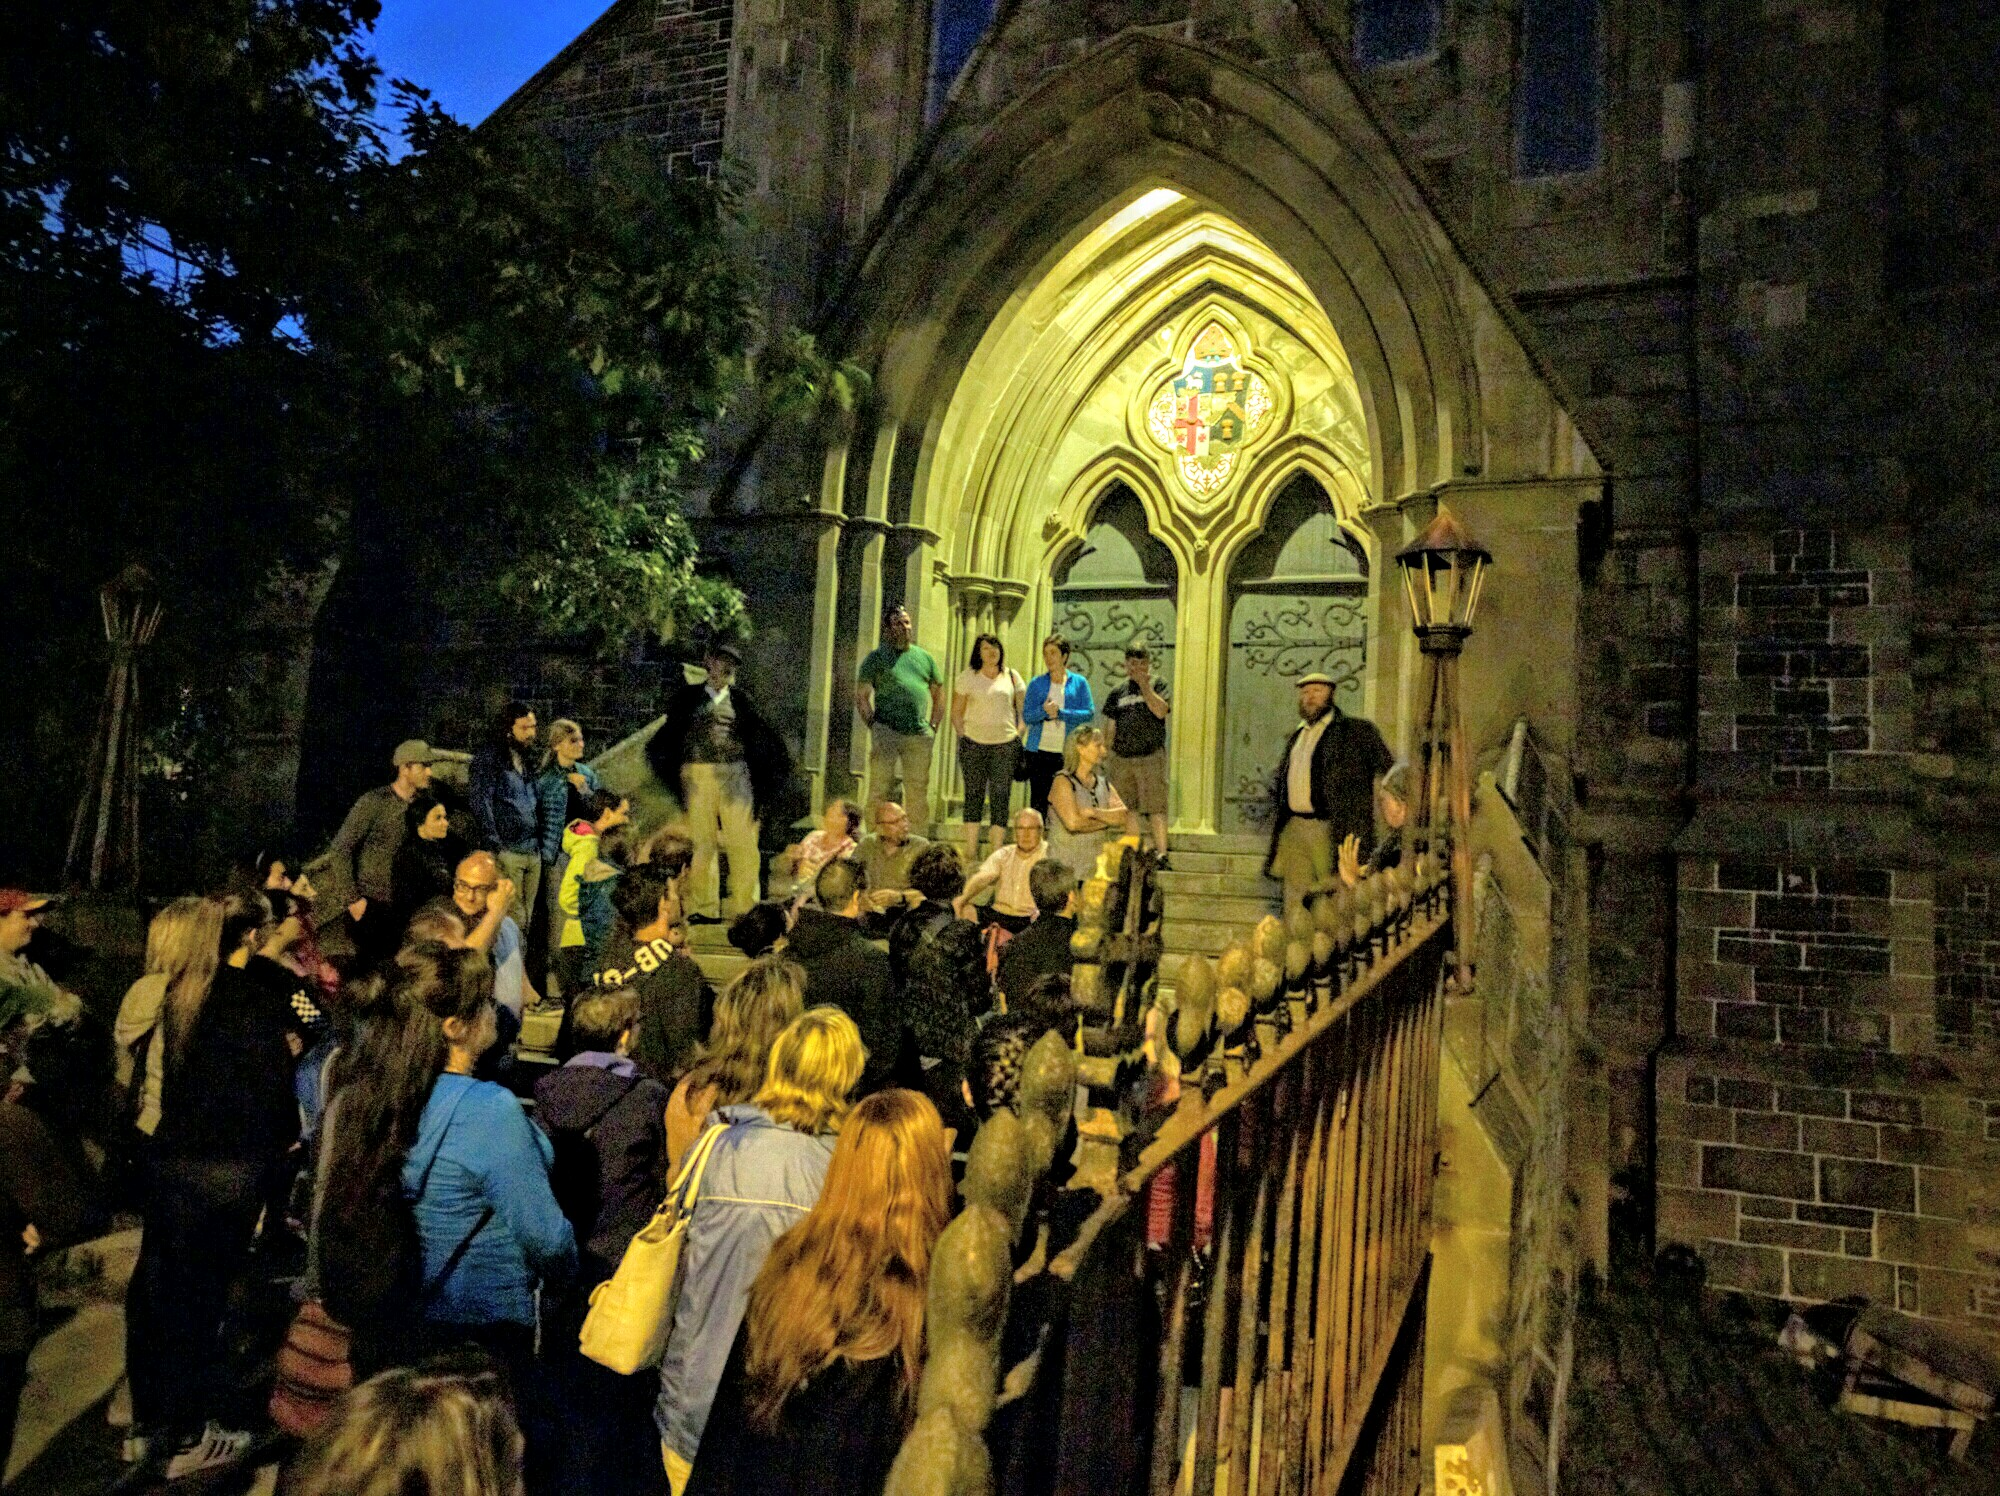 Sinners and Spirits ghost tour in St. John's, Newfoundland